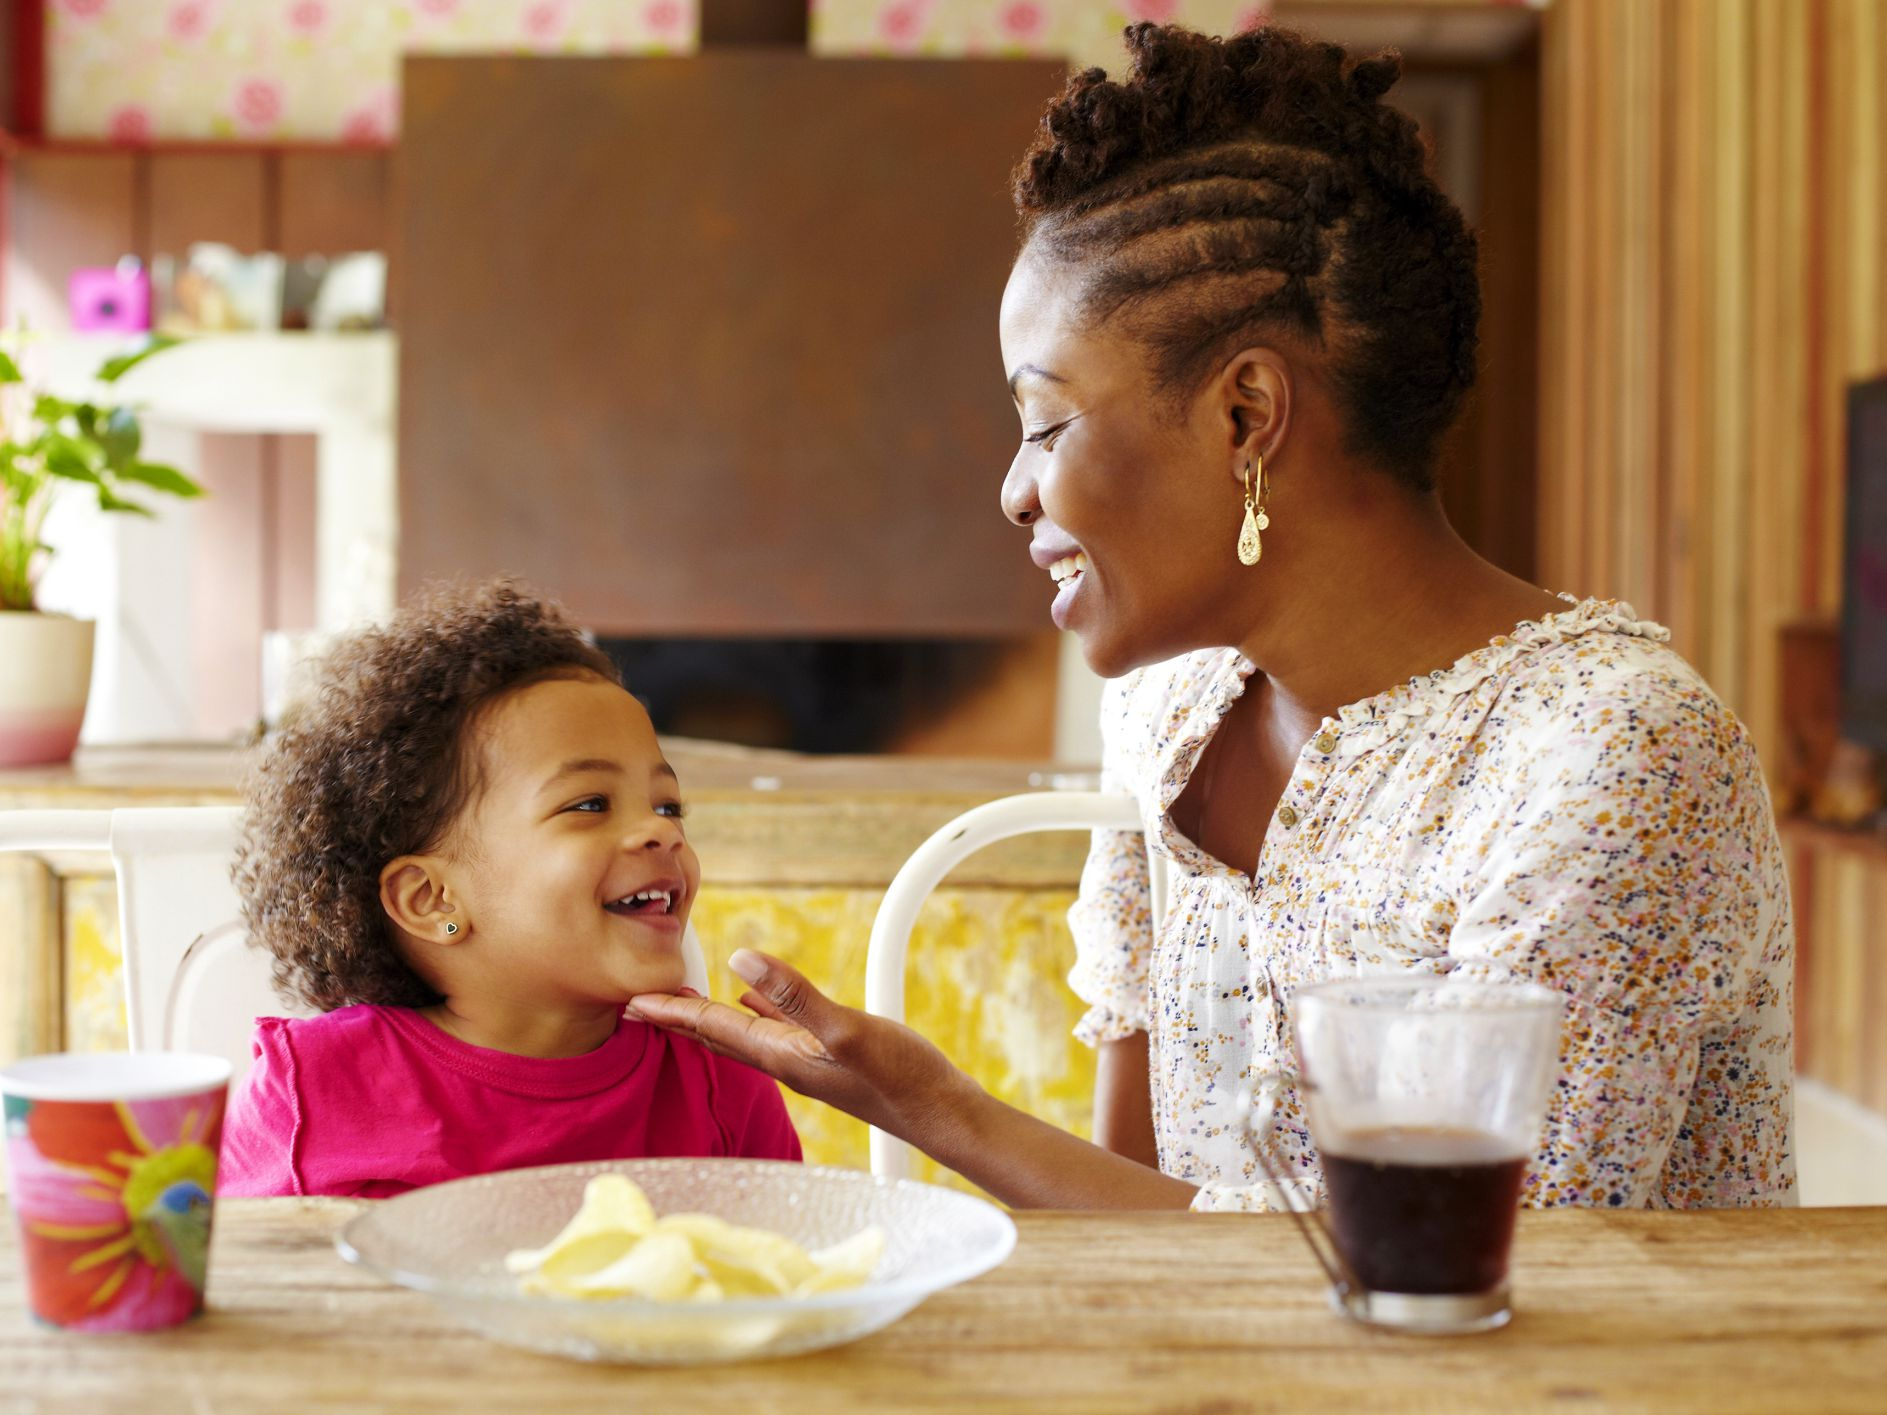 What Are Traits of Good Parents?